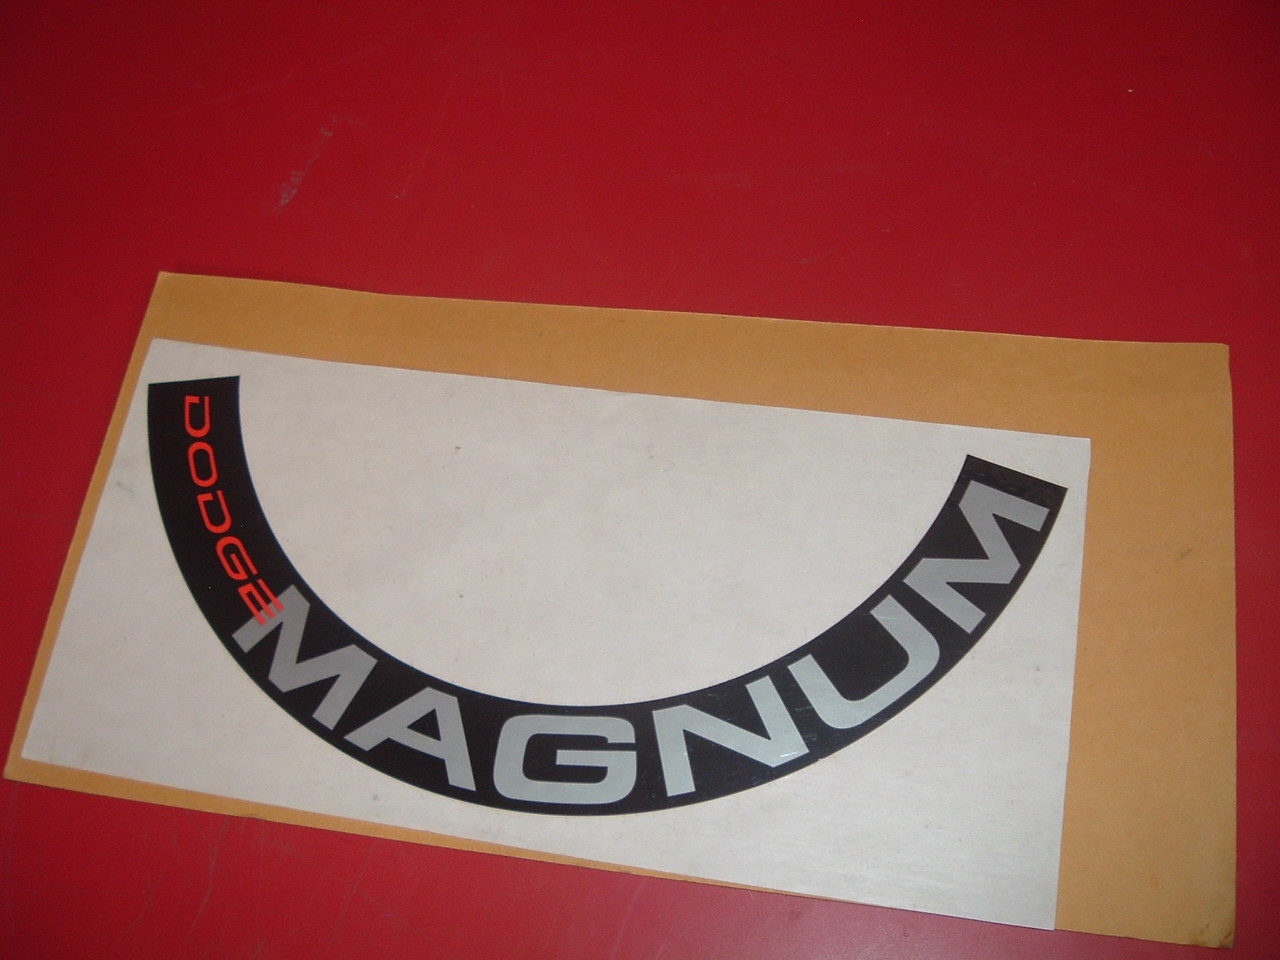 1988 89 90 91 92 93 94 dodge dakota pickup truck dodge magnum decal NOS mopar (z dodgemagnum)